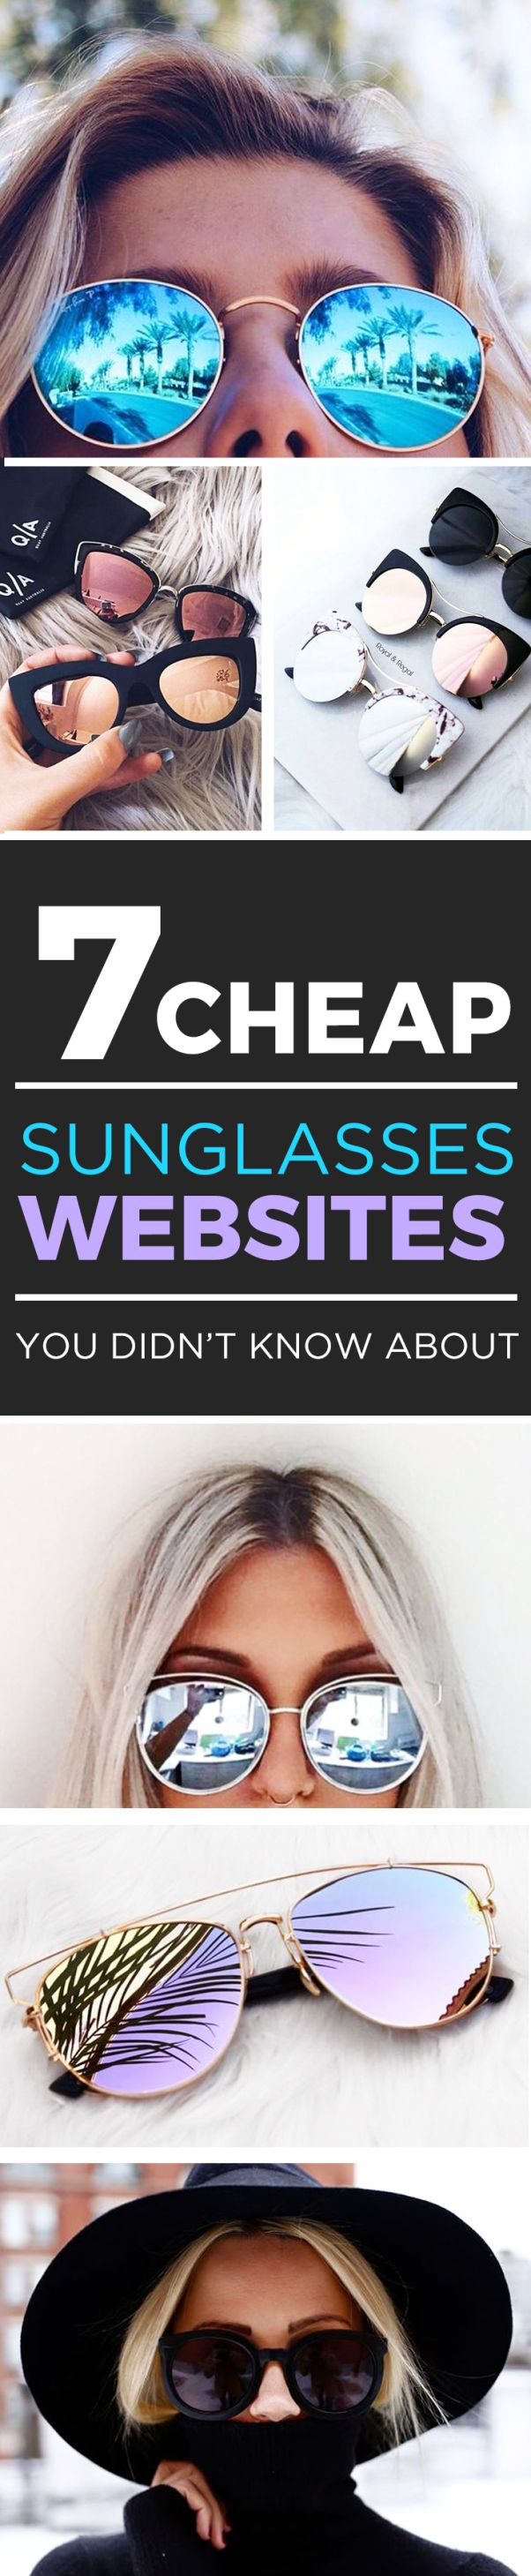 This list of cheap sunglasses websites is awesome!